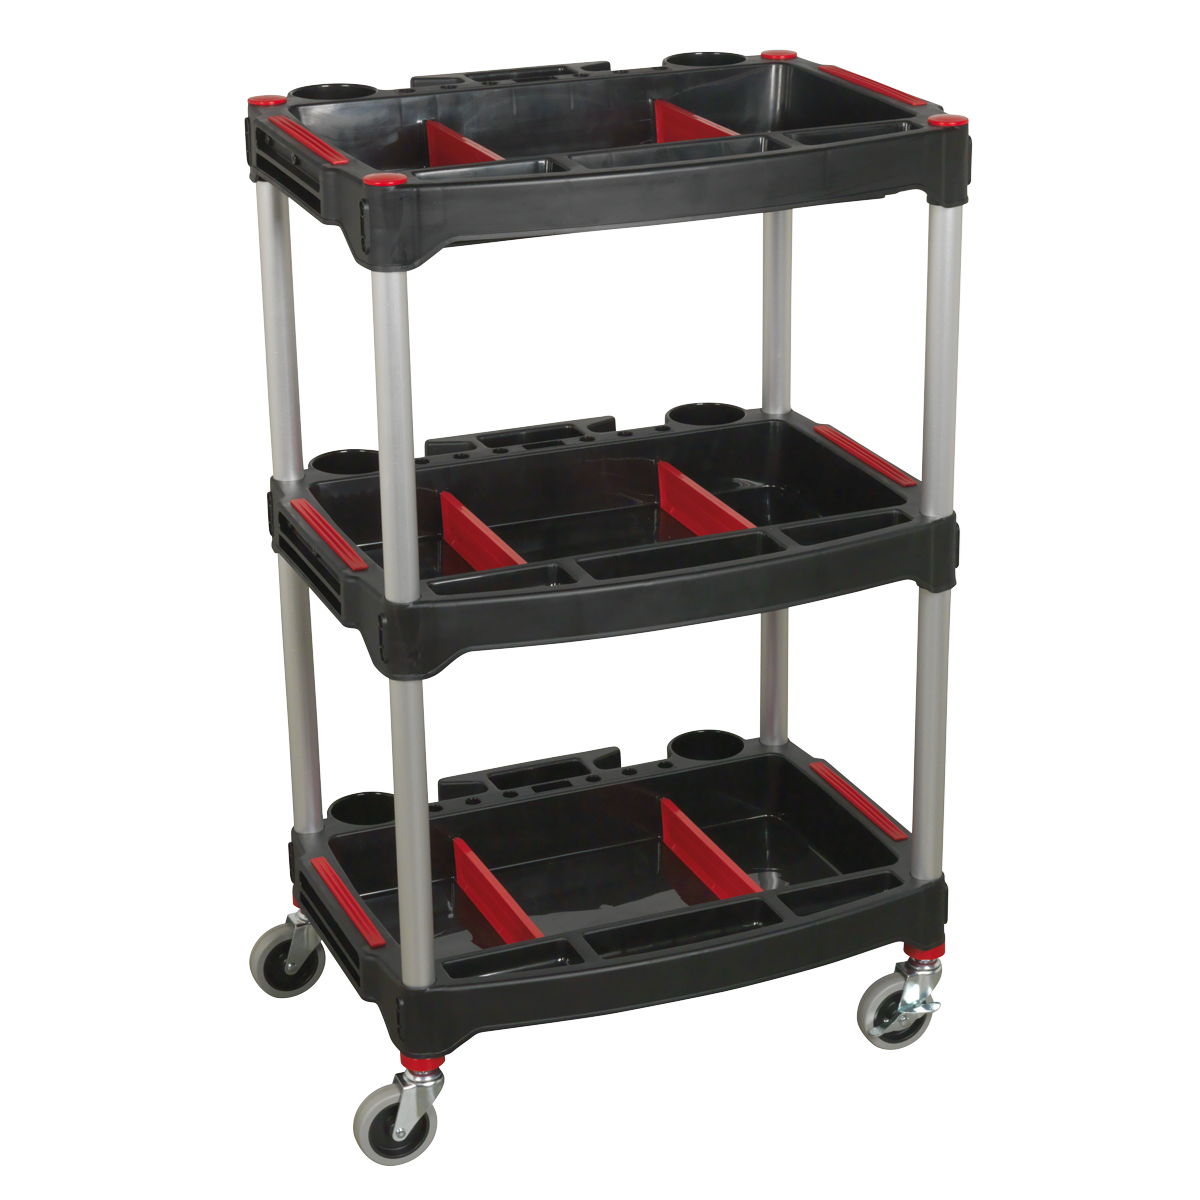 SEALEY Workshop Trolley 3 Level Composite With Parts Storage